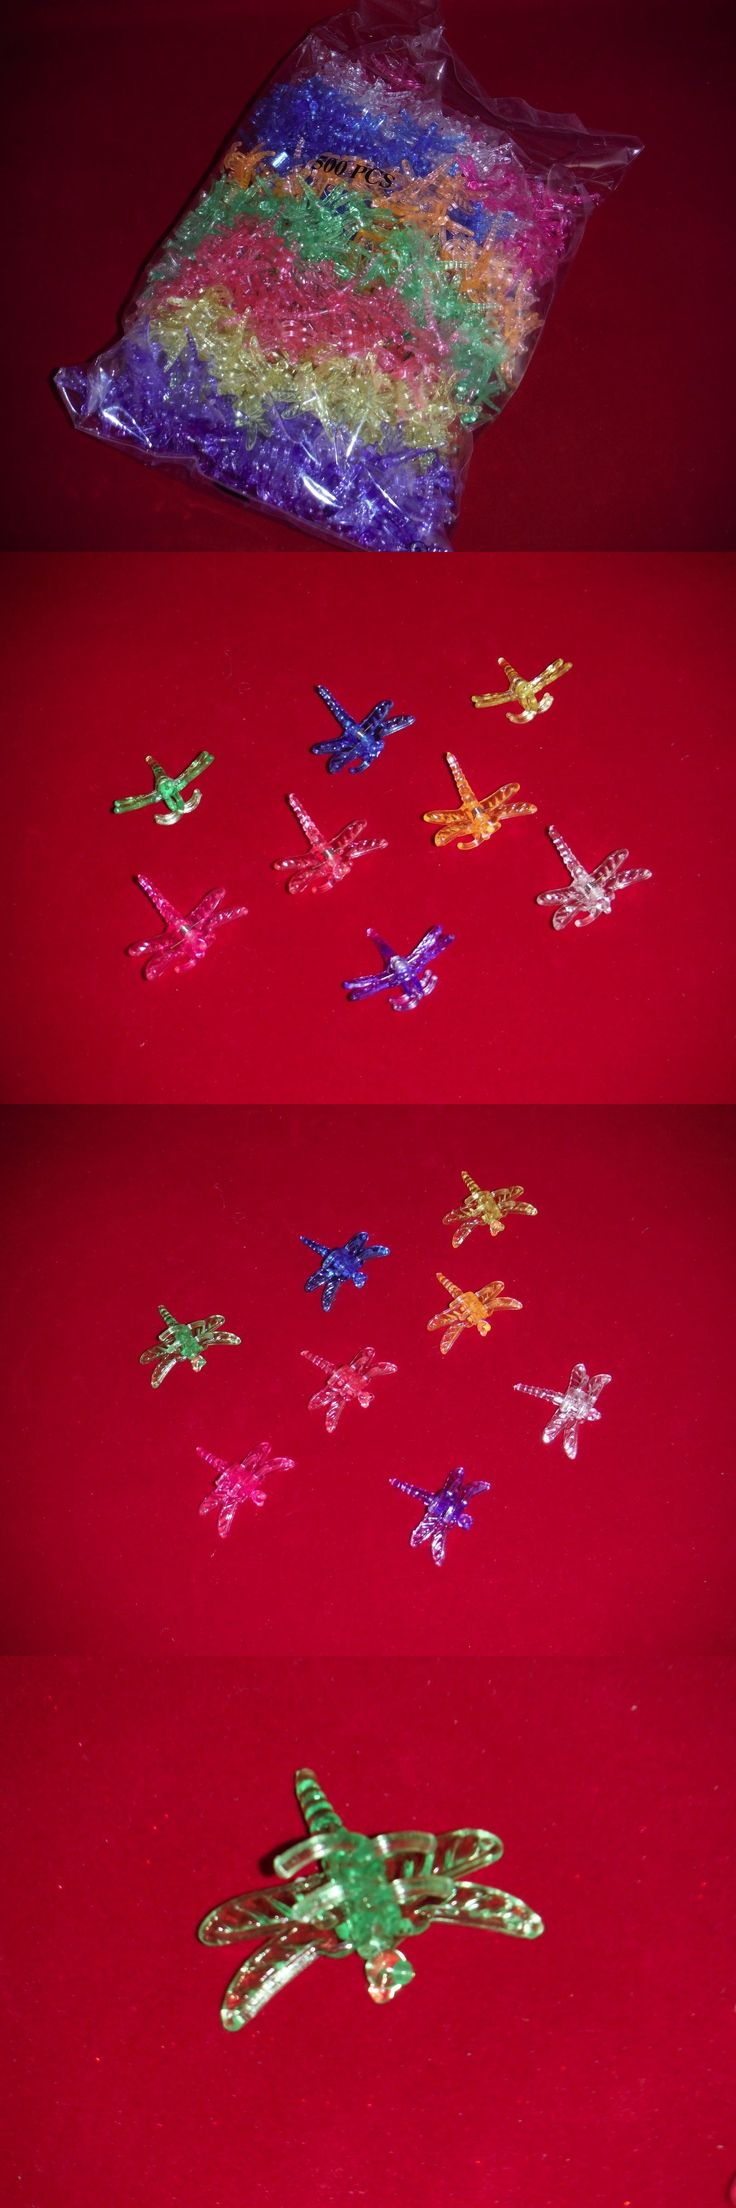 Plant Ties and Supports 181001: X500 Decorative Dragonfly Orchid Nursery Plant Clips Supports Bag 8 Colors -> BUY IT NOW ONLY: $67 on eBay!